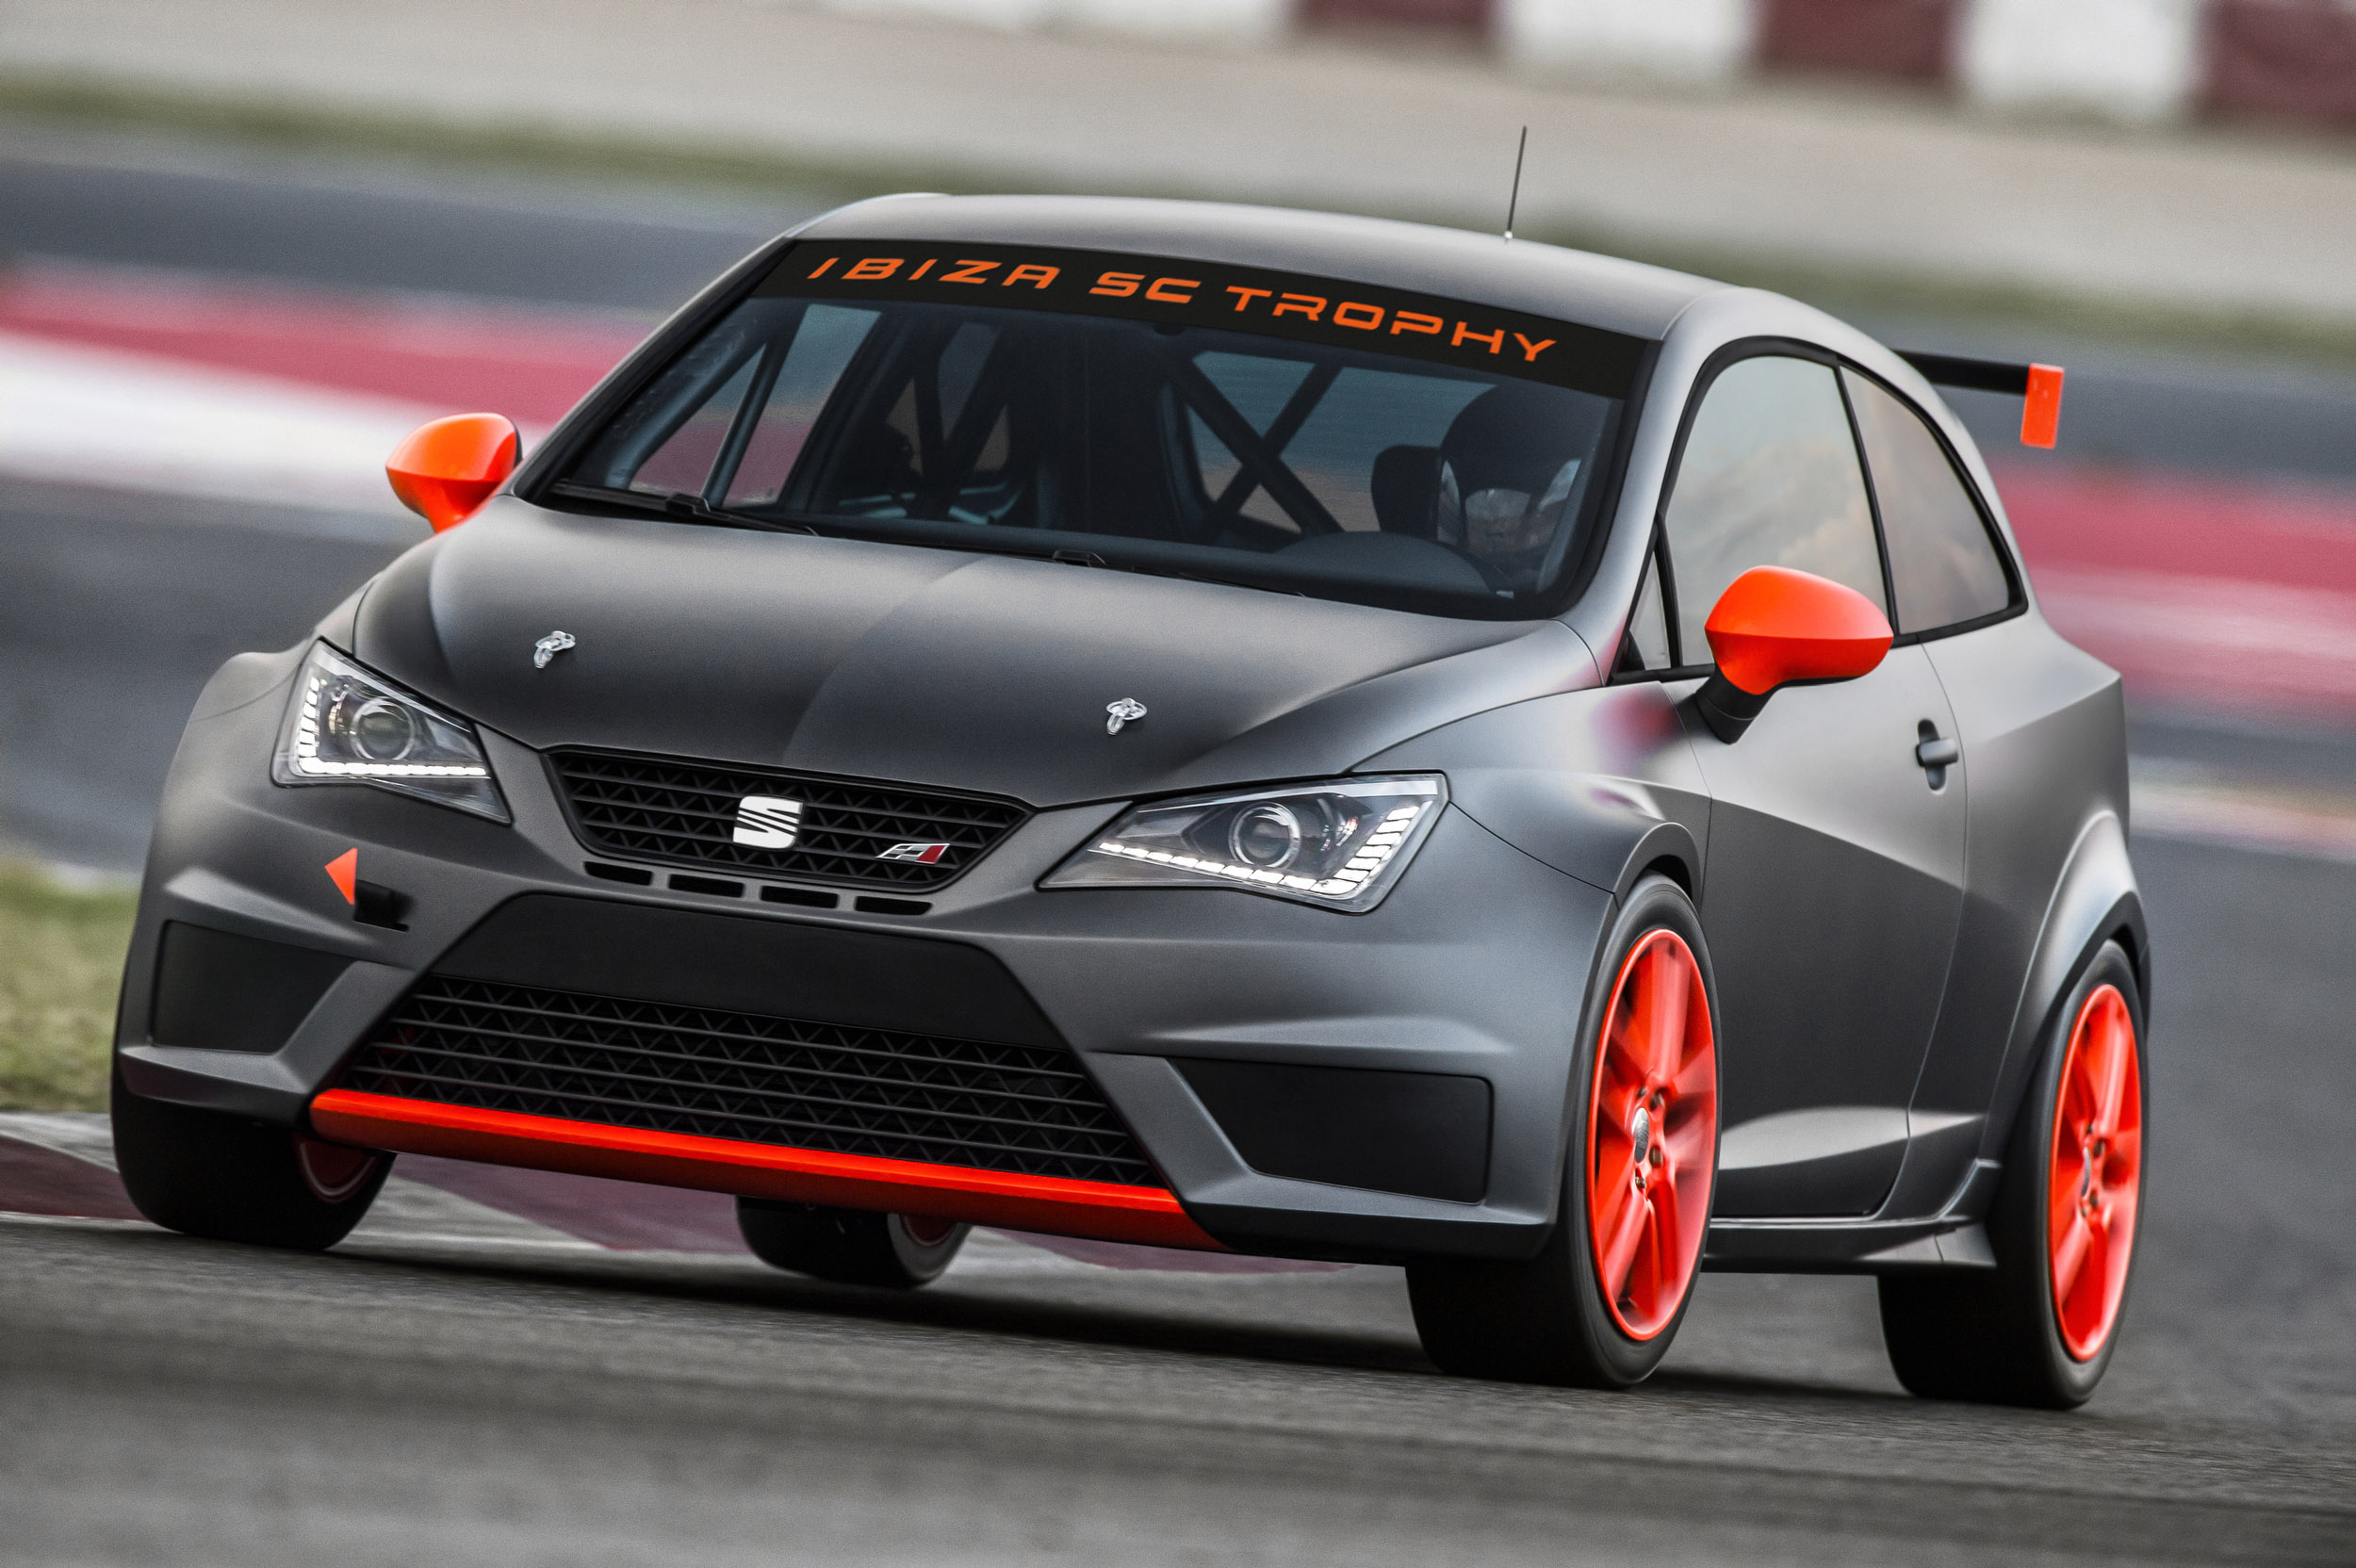 2013 seat ibiza sc trophy 200hp. Black Bedroom Furniture Sets. Home Design Ideas